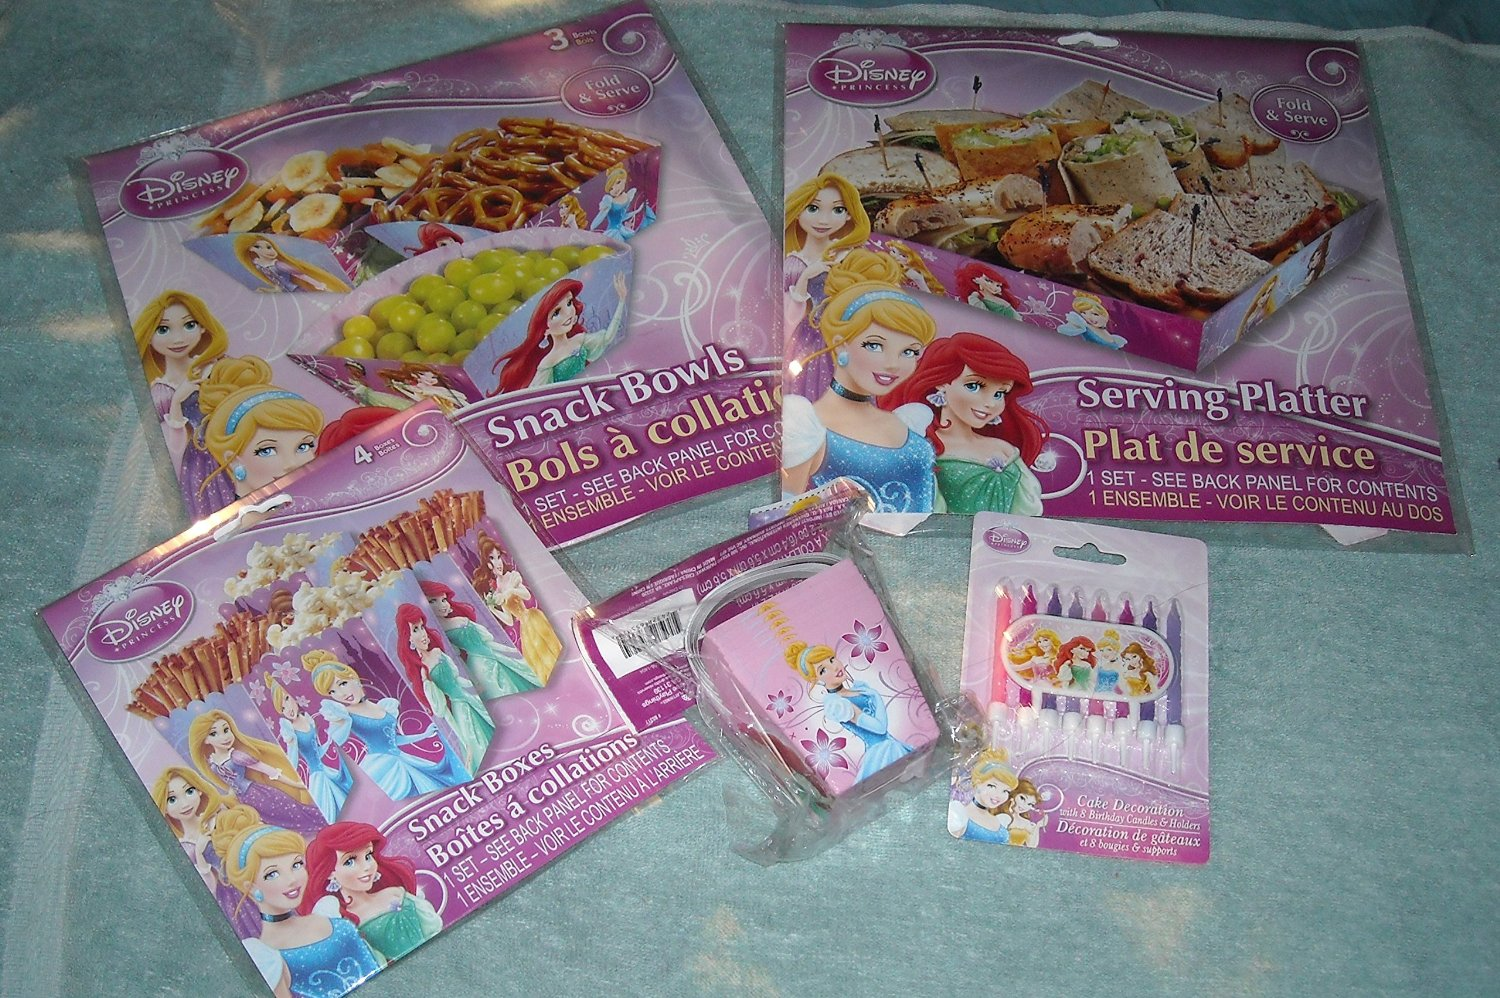 Disney Princess Birthday Party Table Decorations- Serving Platter, Snack Stand, Snack Bowls, Snack Boxes, Placemats, Cupcake cups & picks, Candles, Straws, Mini Pails